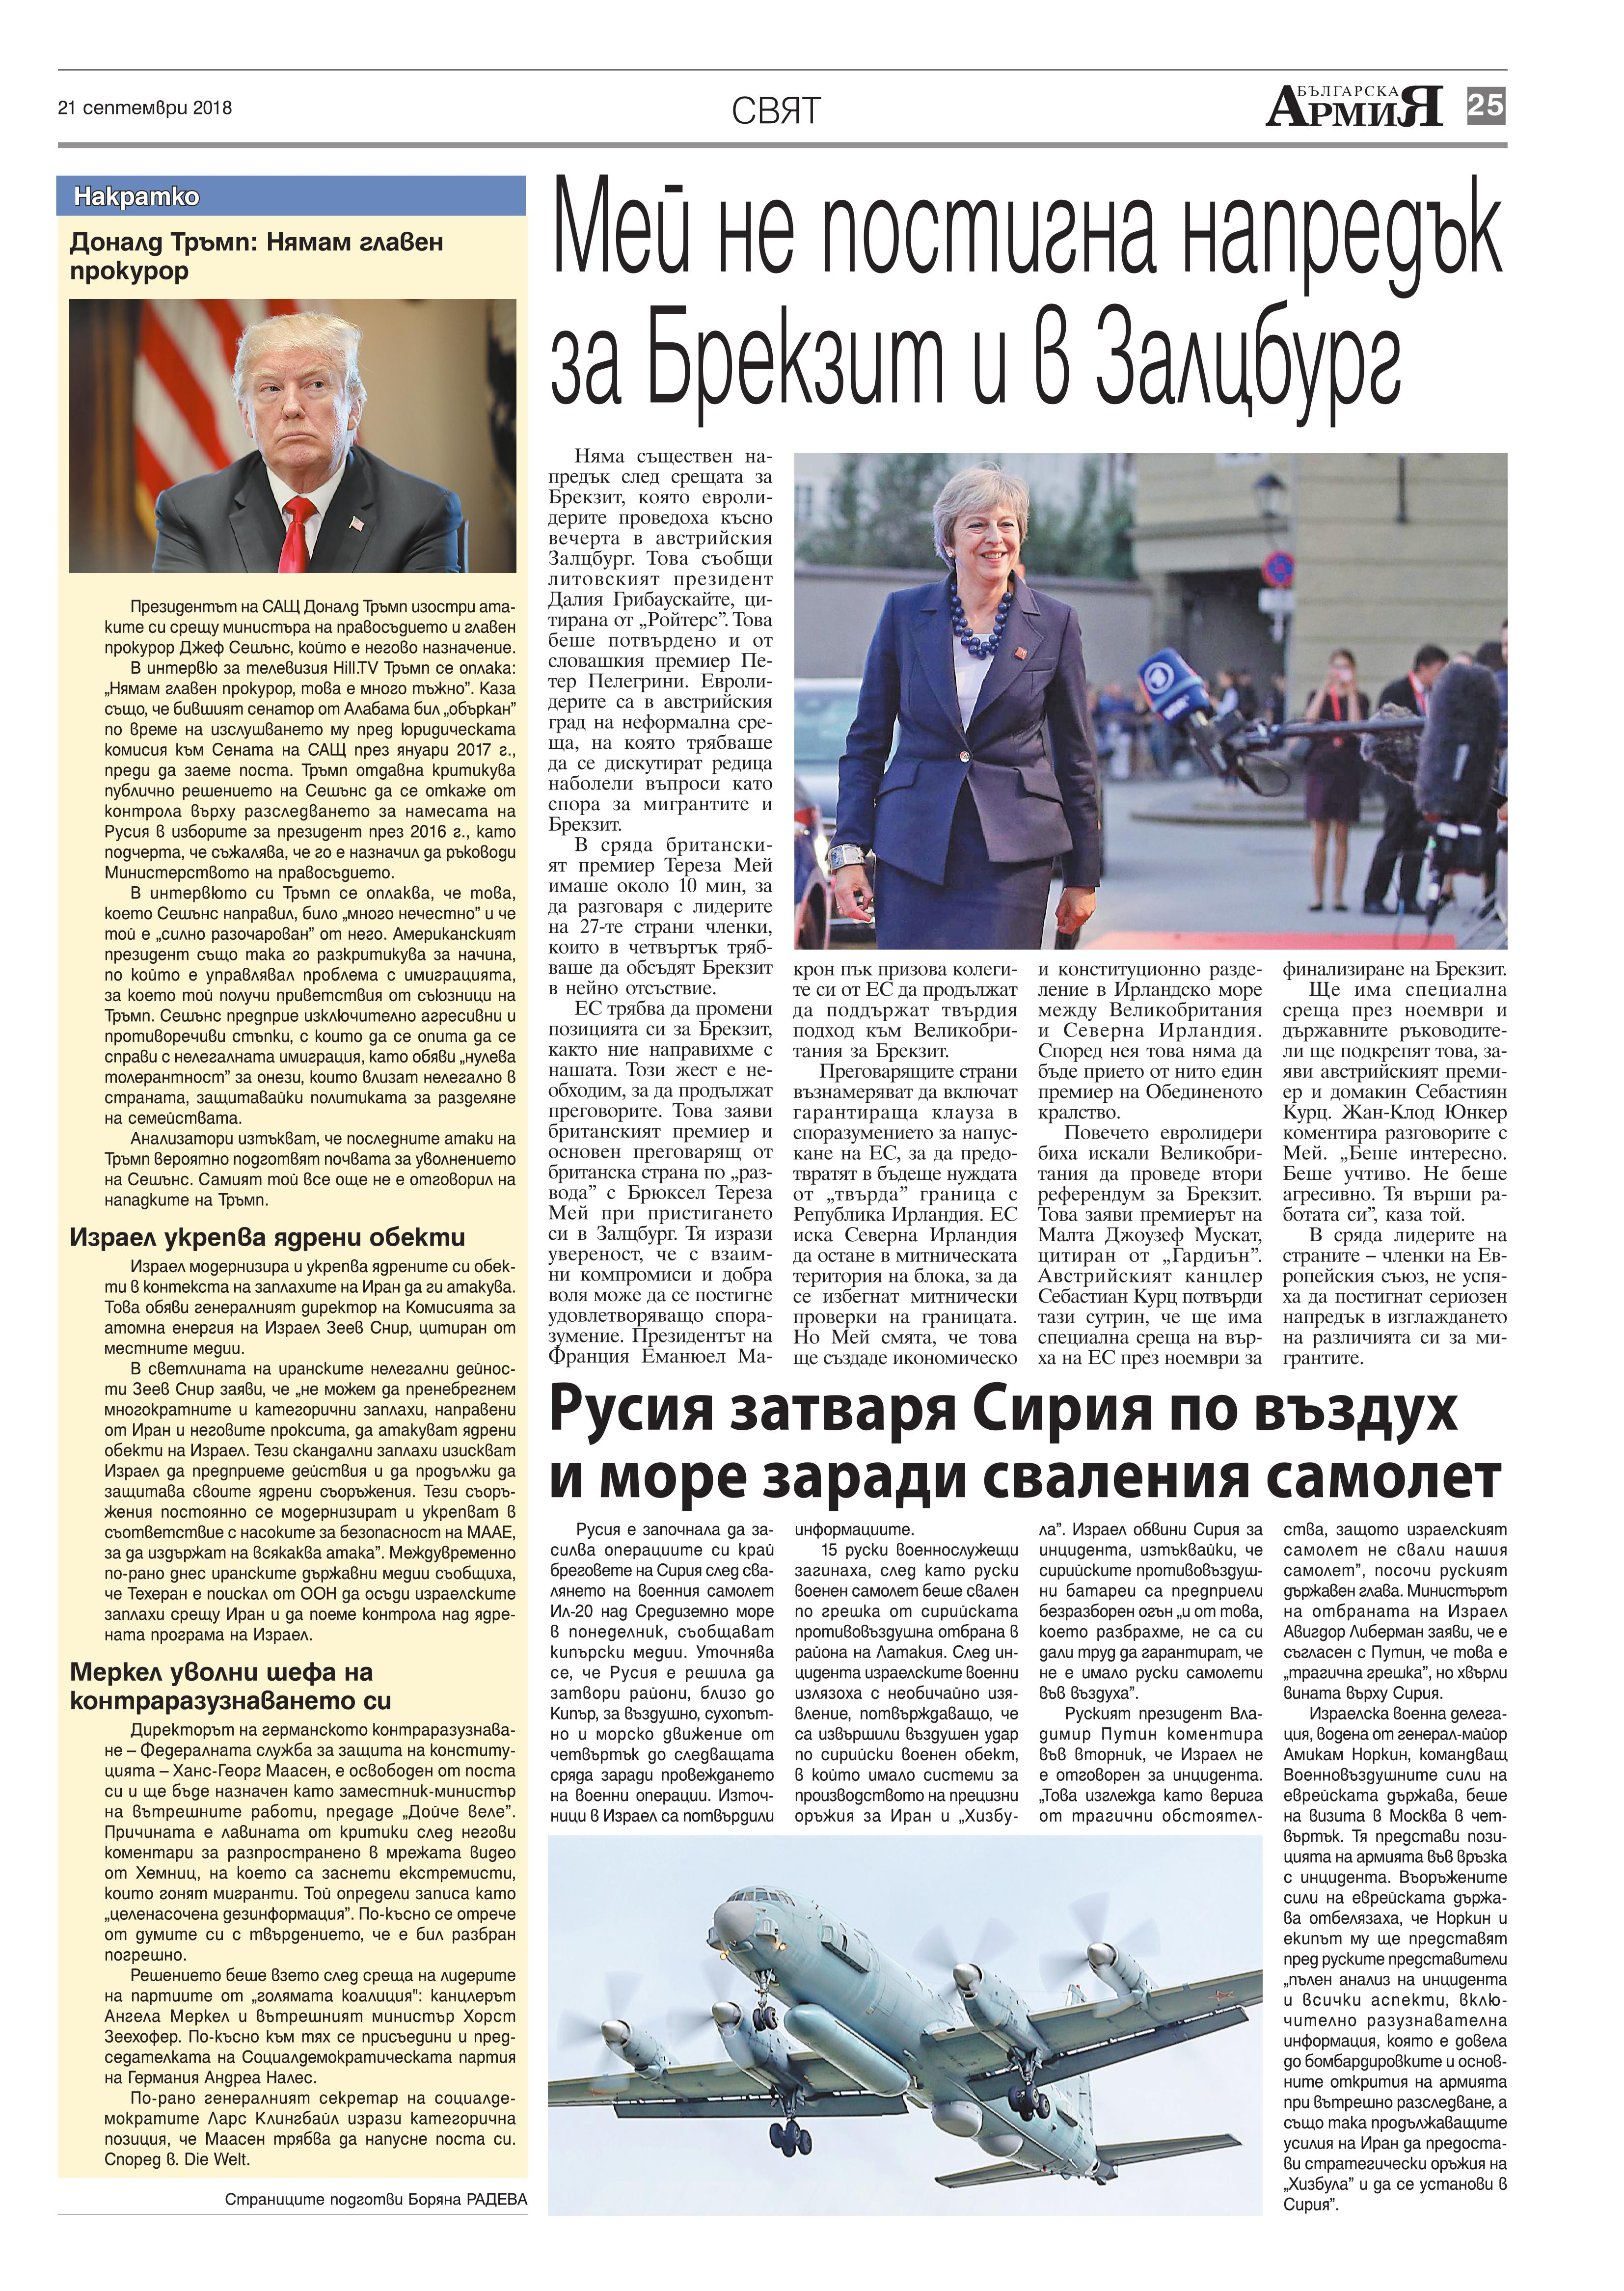 https://armymedia.bg/wp-content/uploads/2015/06/25.page1_-54.jpg